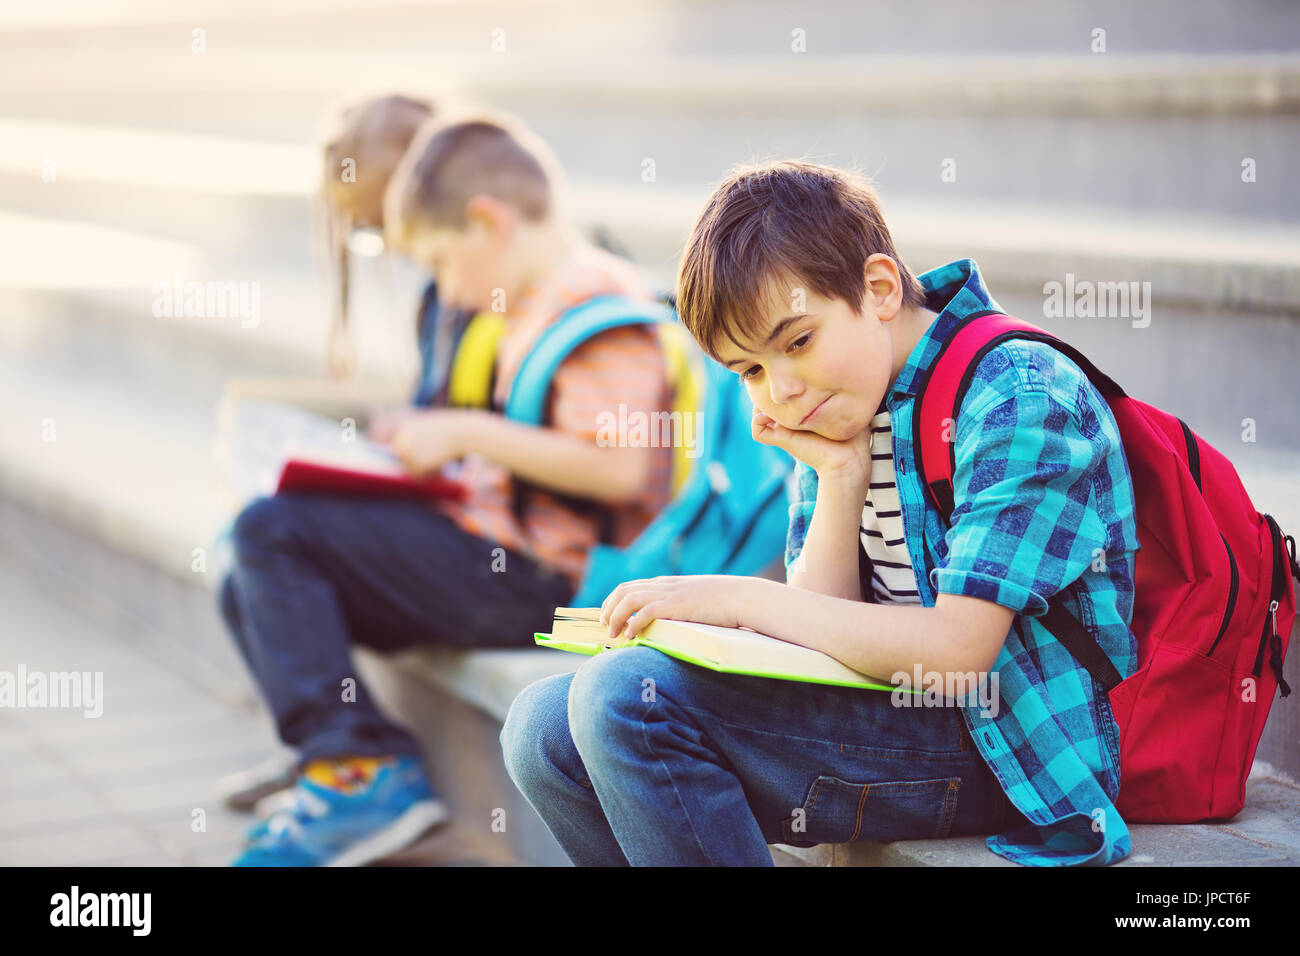 Children with rucksacks sitting on the stairs near school - Stock Image